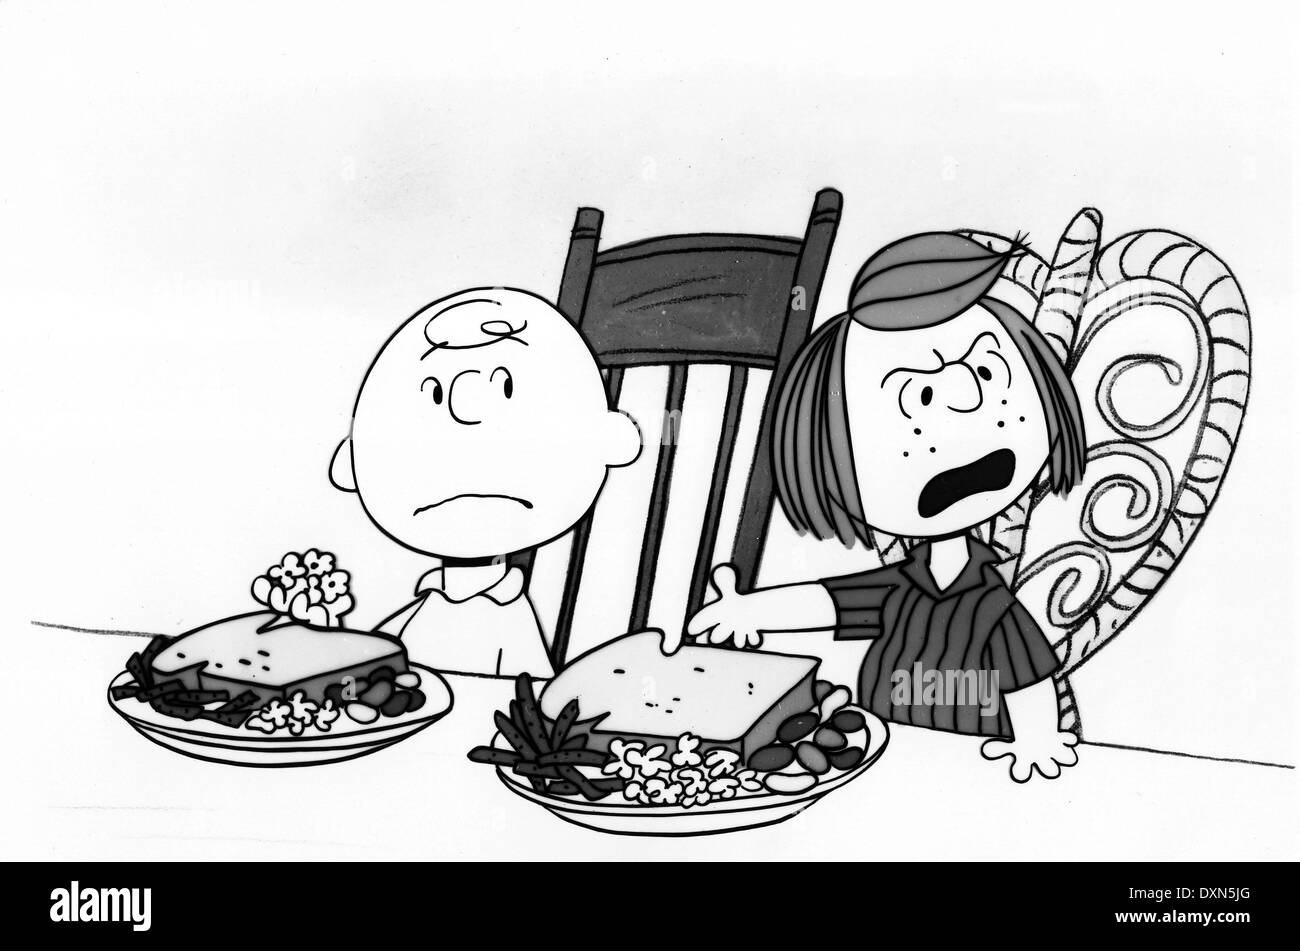 Charlie Brown Cartoon Stock Photos & Charlie Brown Cartoon Stock ...